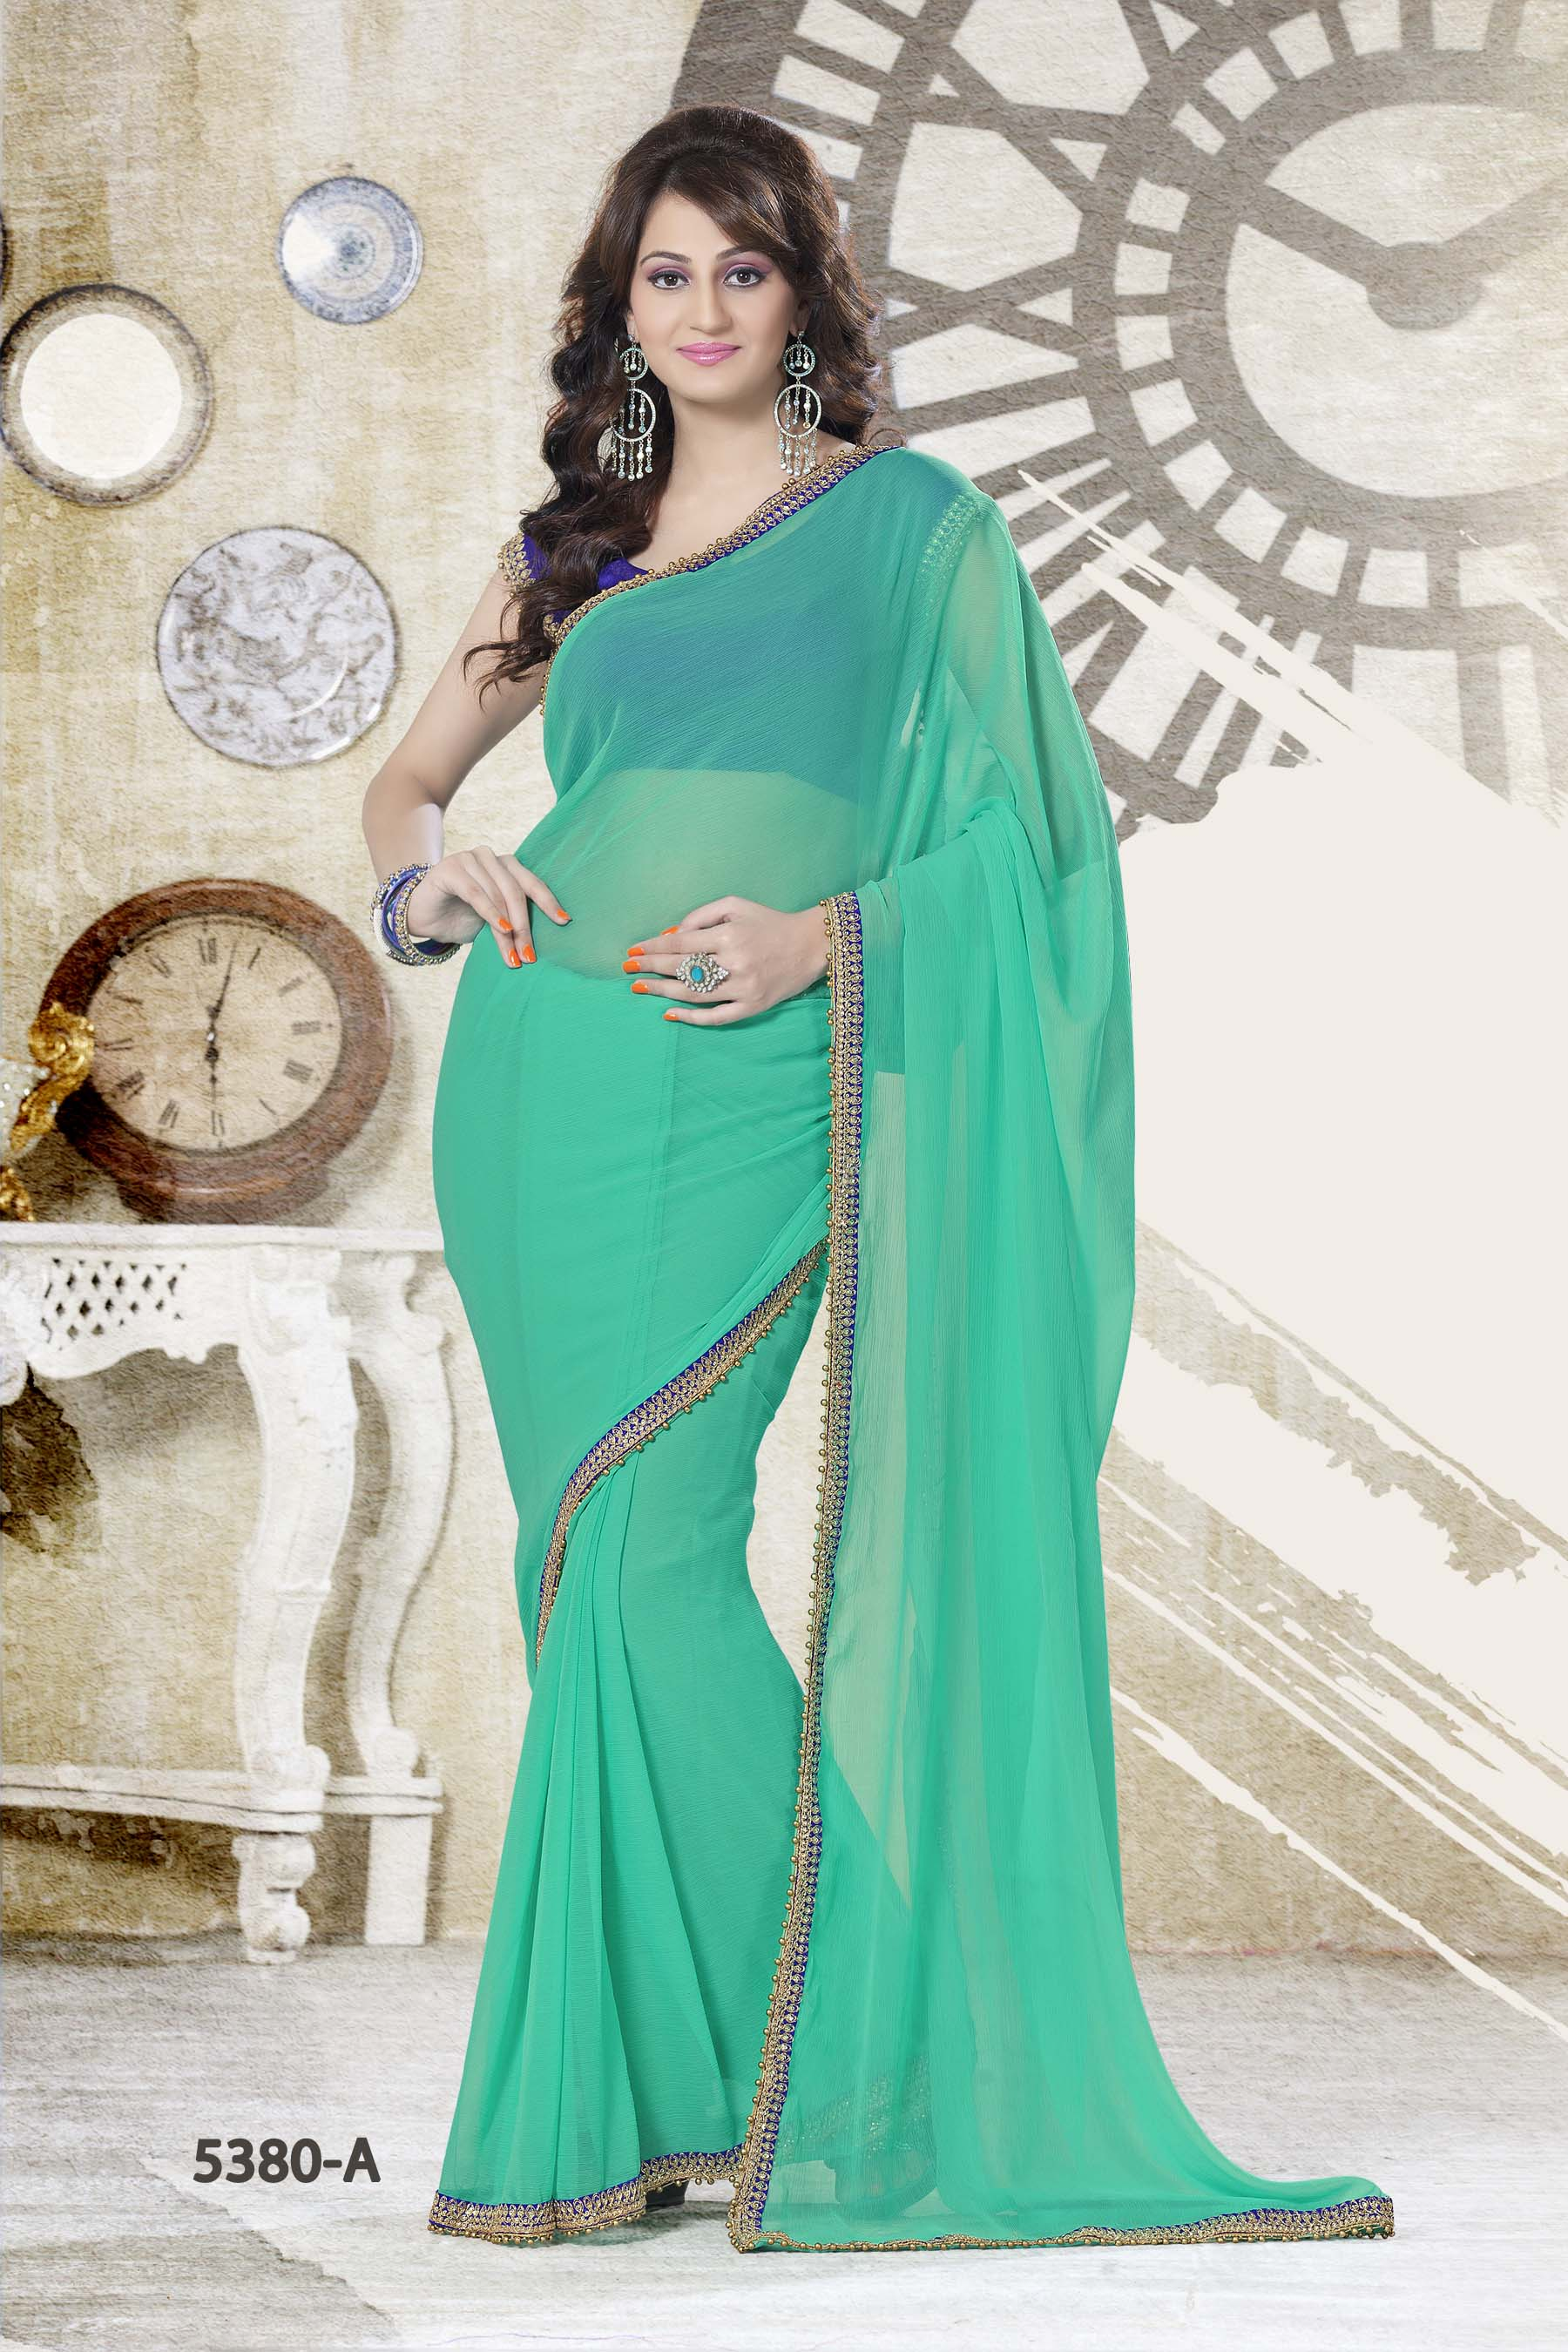 ca52d0885a PLAIN SEA GREEN SAREE WITH CONTRAST BLOUSE - FASHION ERA - 279852